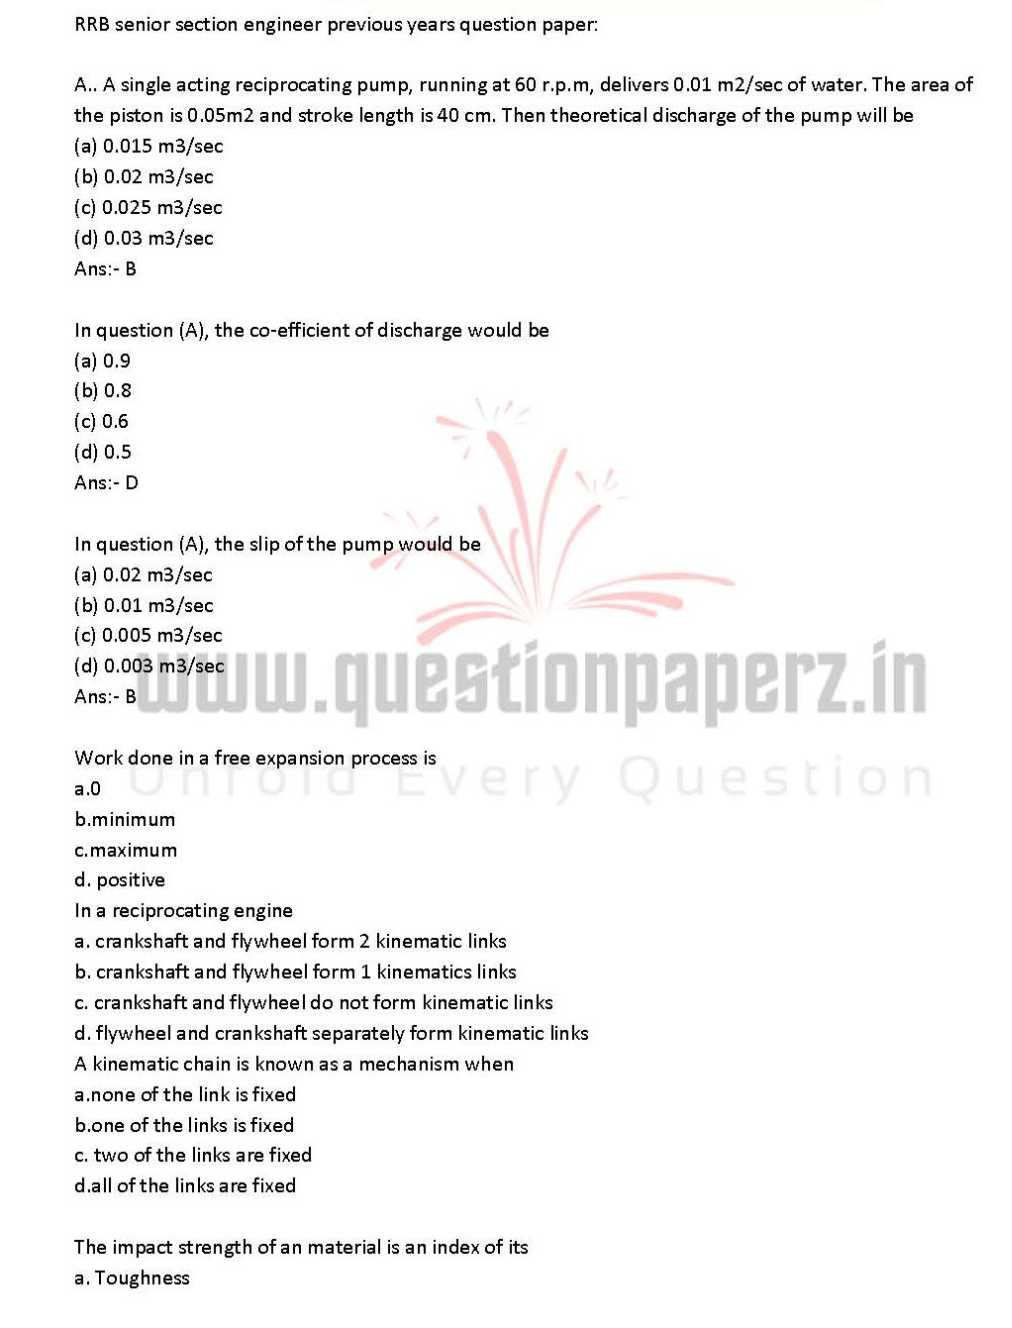 RRB Previous Year Question Papers Download - 2018-2019 ...